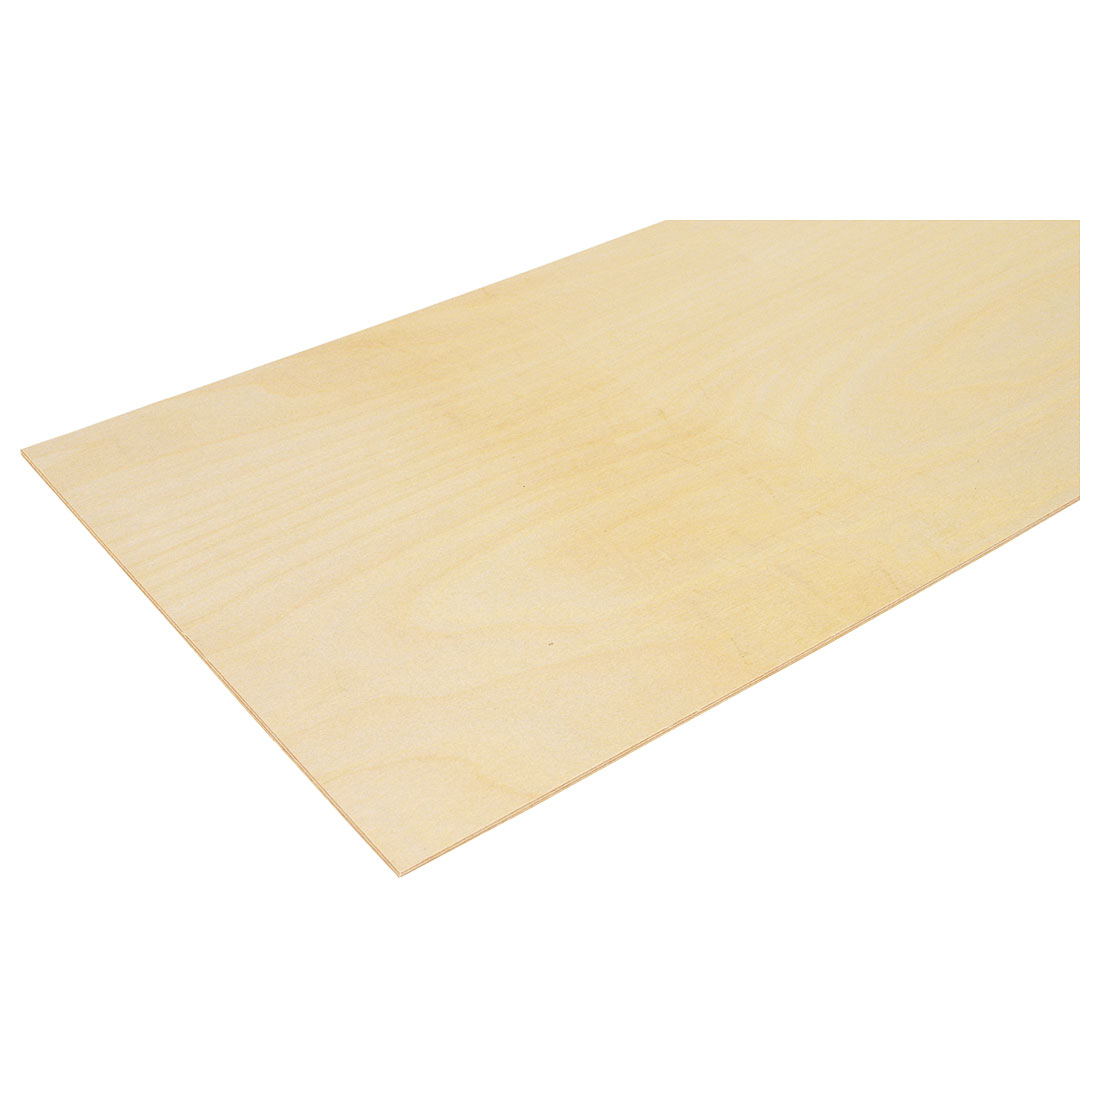 Plans to build aircraft grade birch plywood pdf plans for Birch wood cost